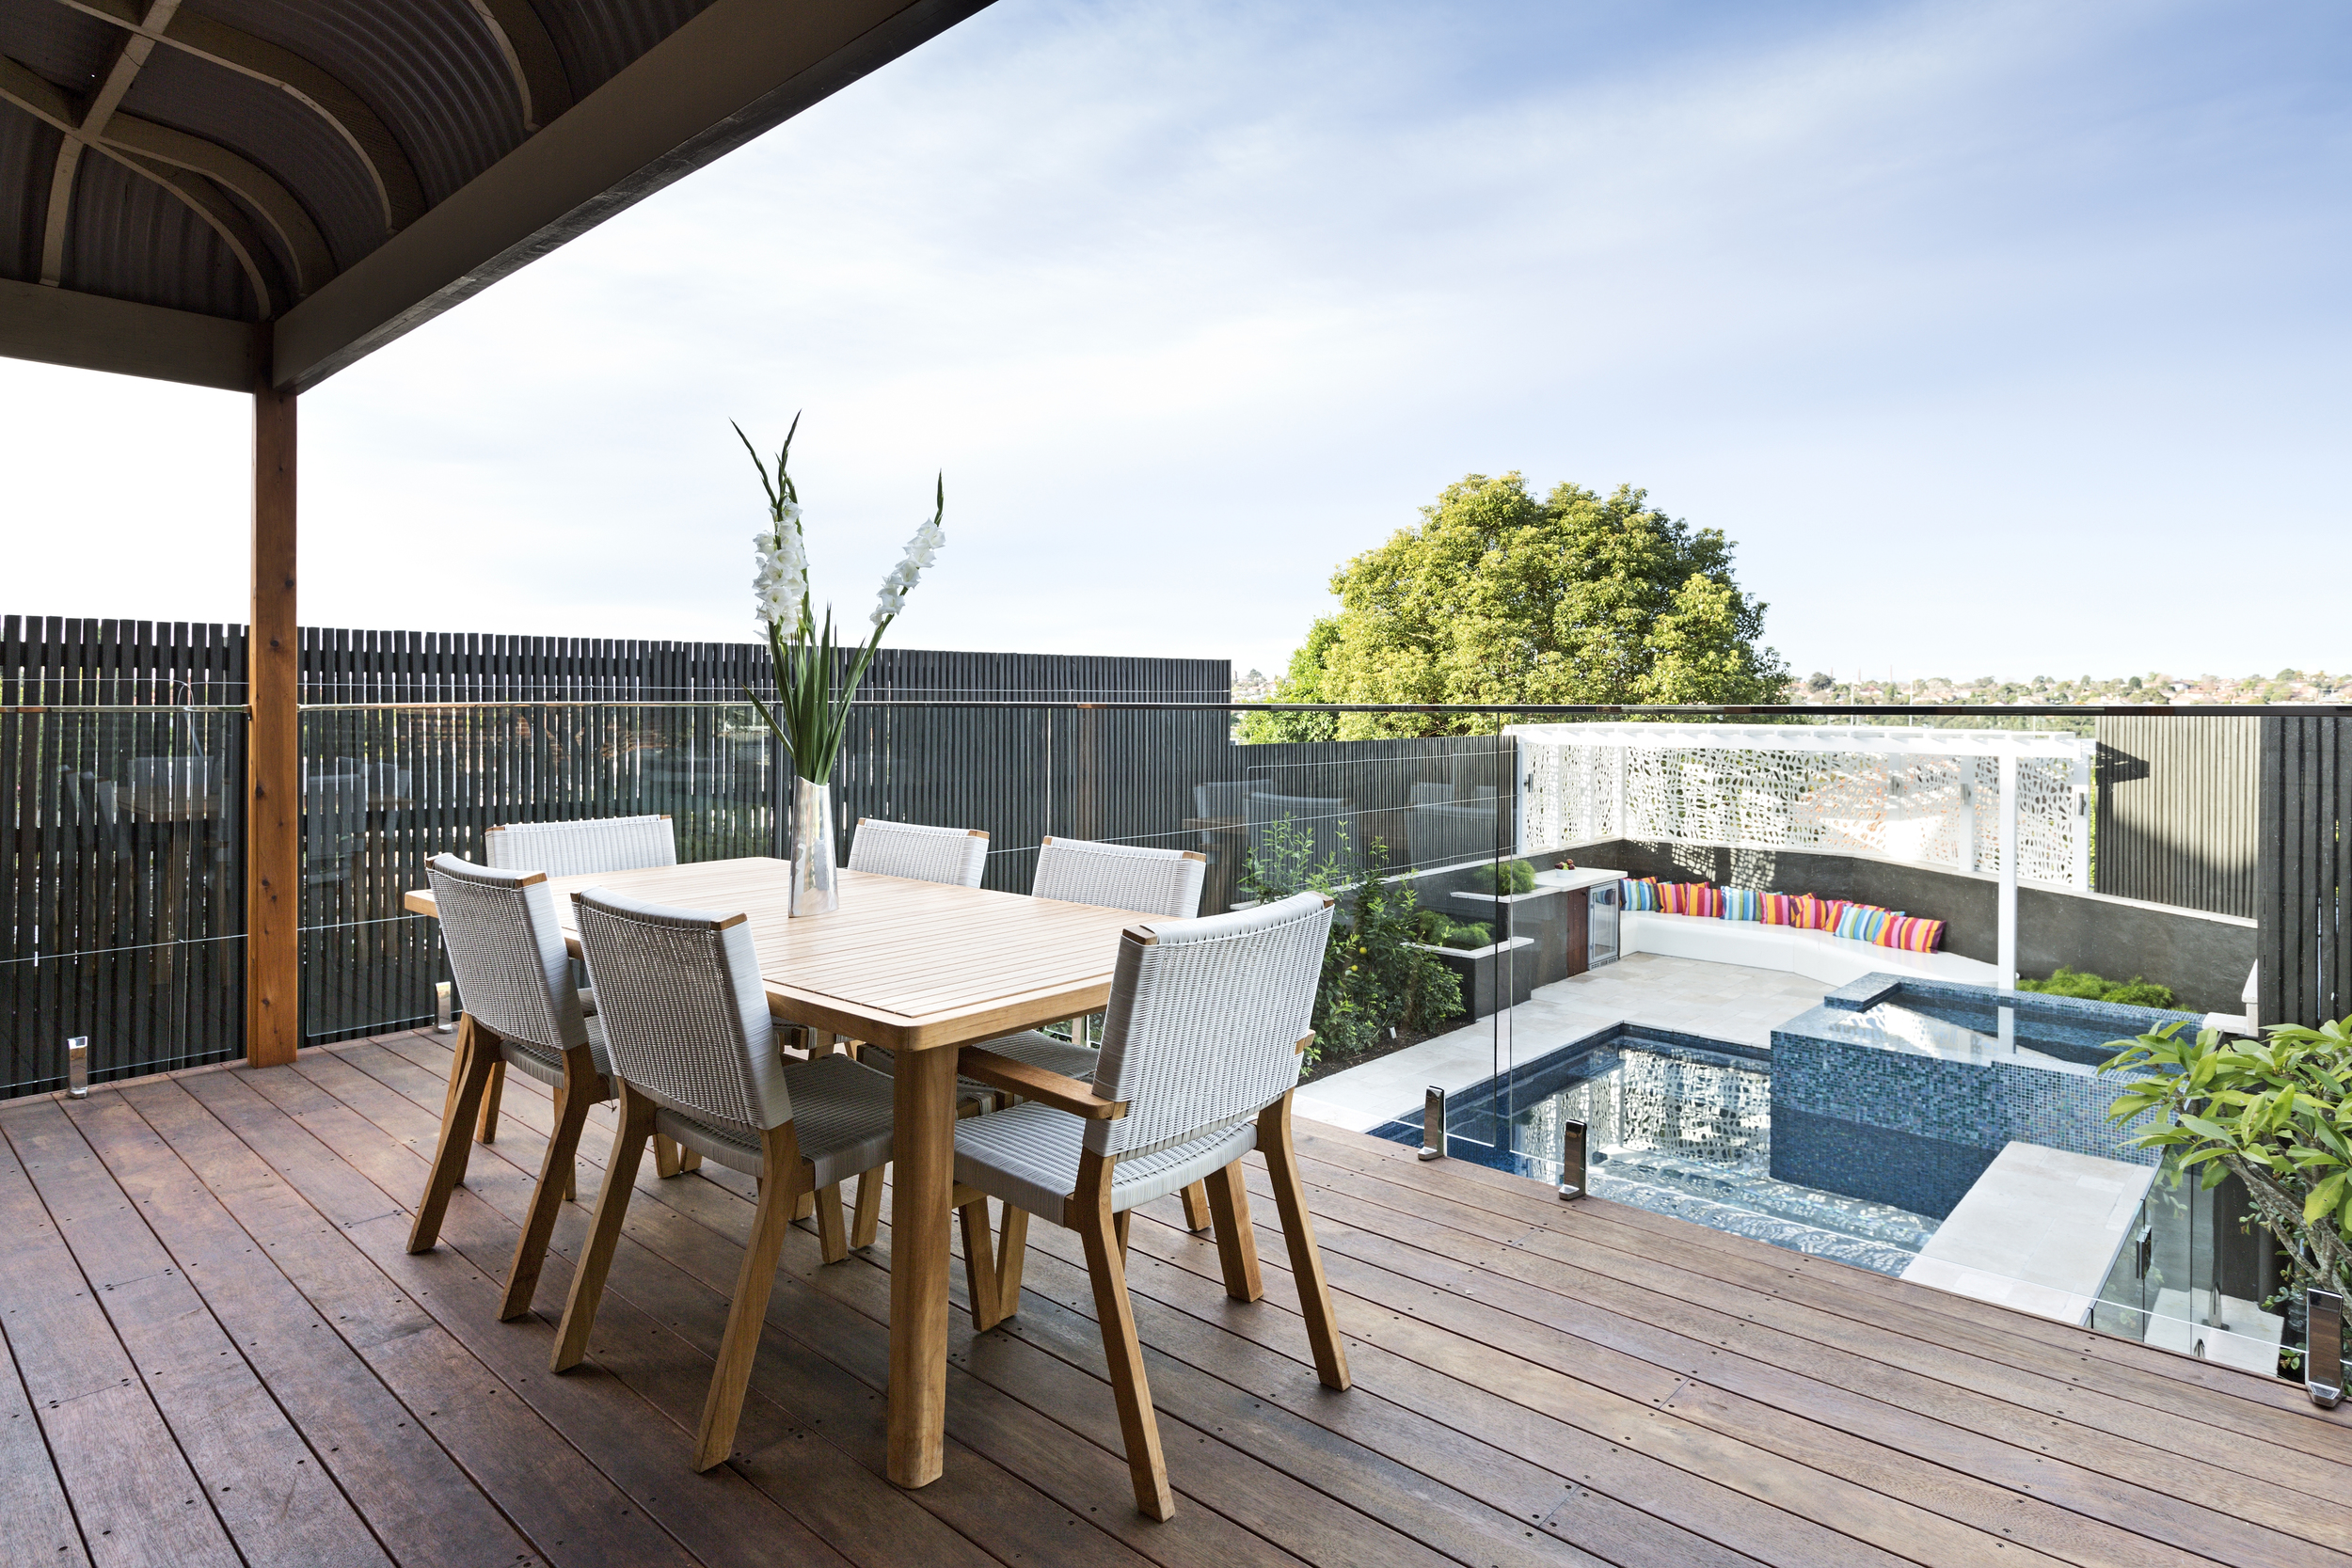 The expanded deck area gives enough dining space for the whole family, as well as housing storage, a change roomand shower underneath.